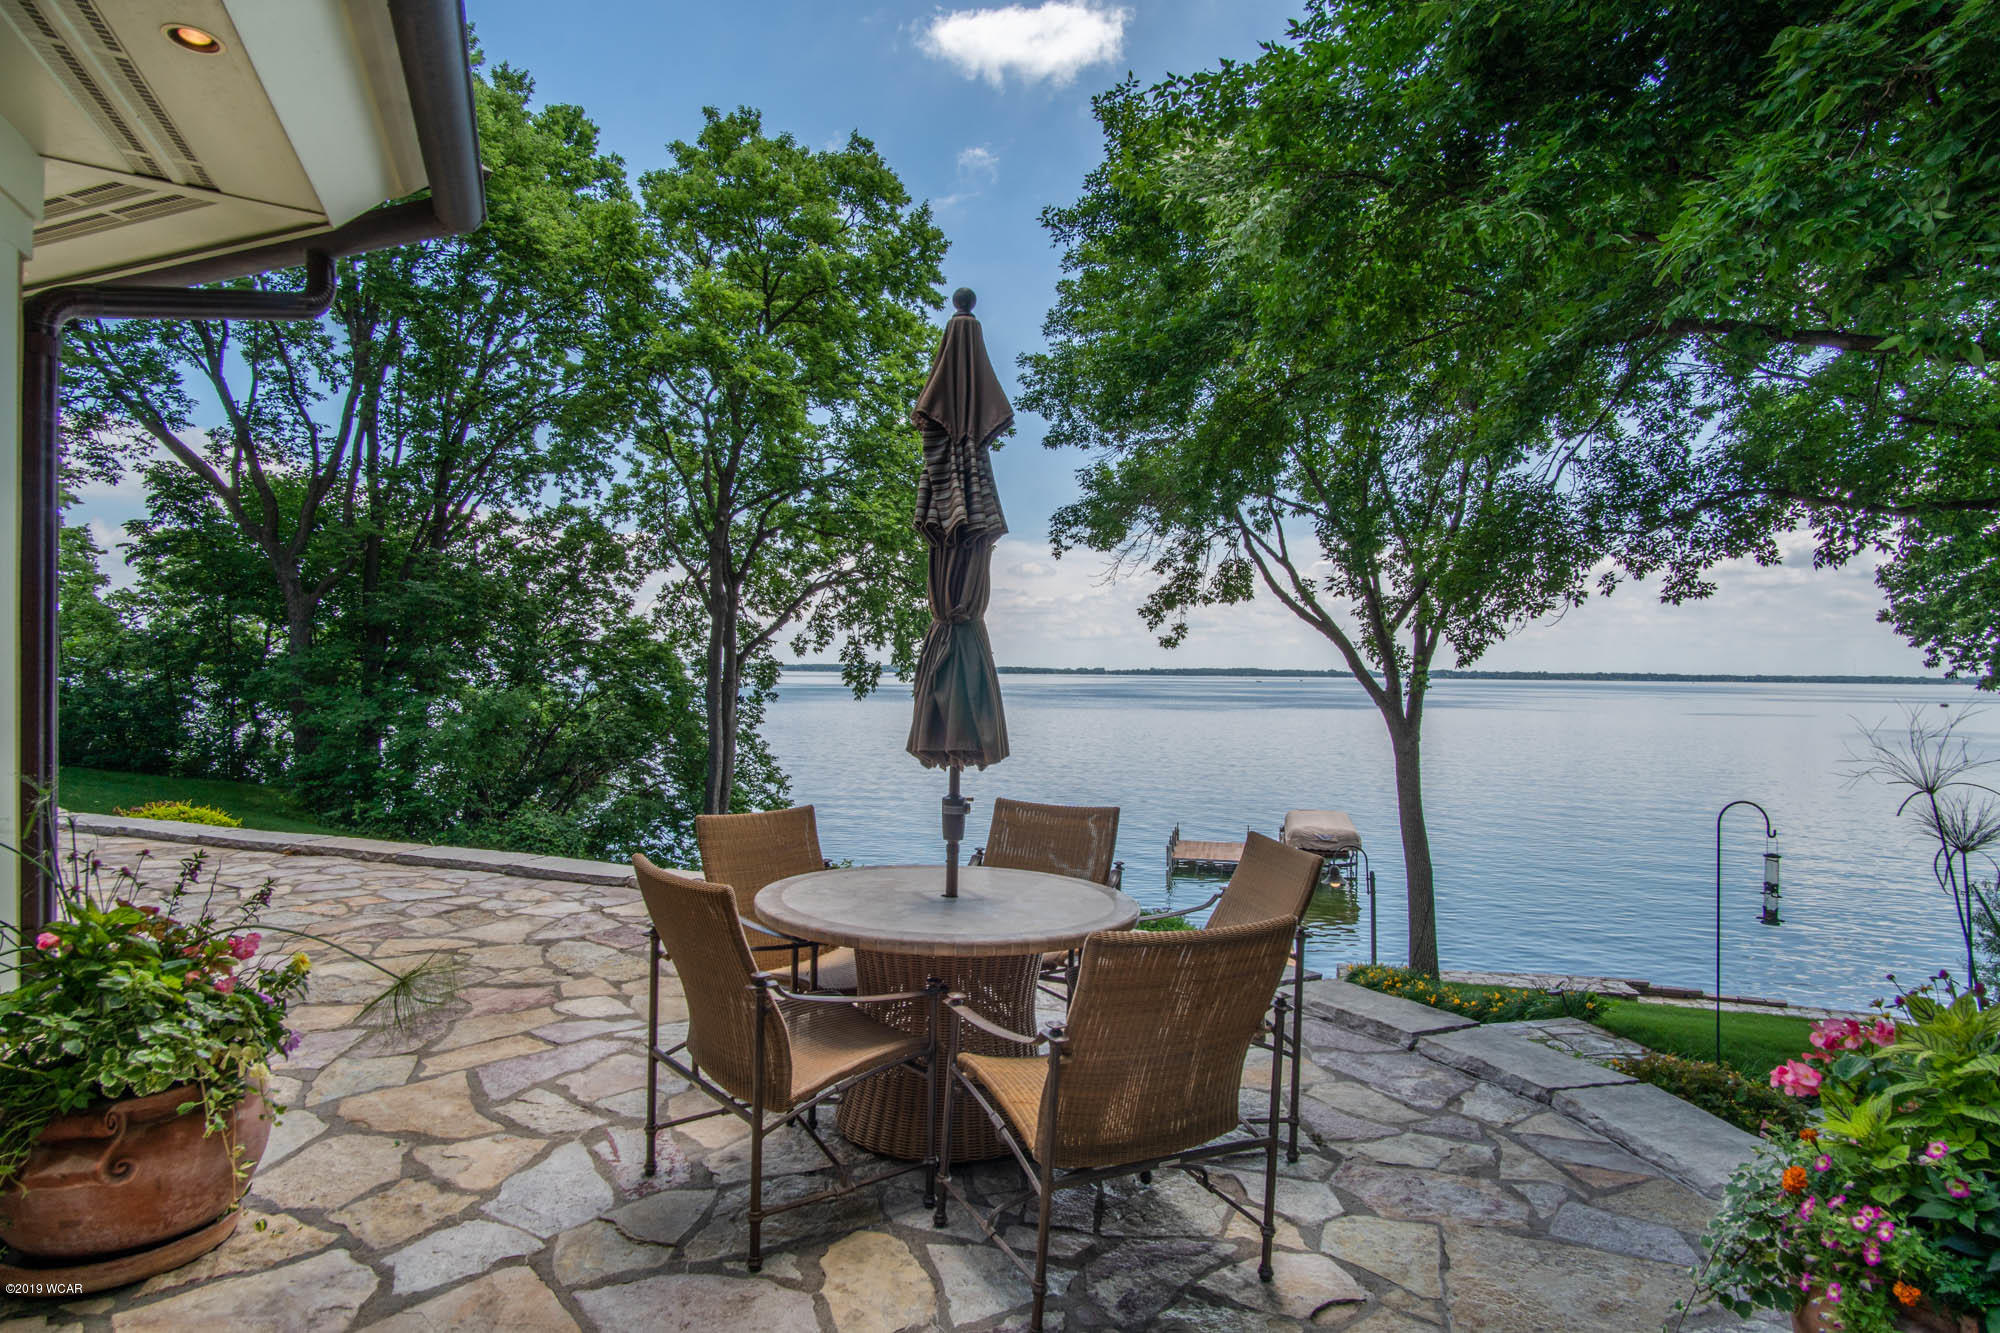 9589 North Shore Drive,Spicer,7 Bedrooms Bedrooms,9 BathroomsBathrooms,Single Family,North Shore Drive,6033420